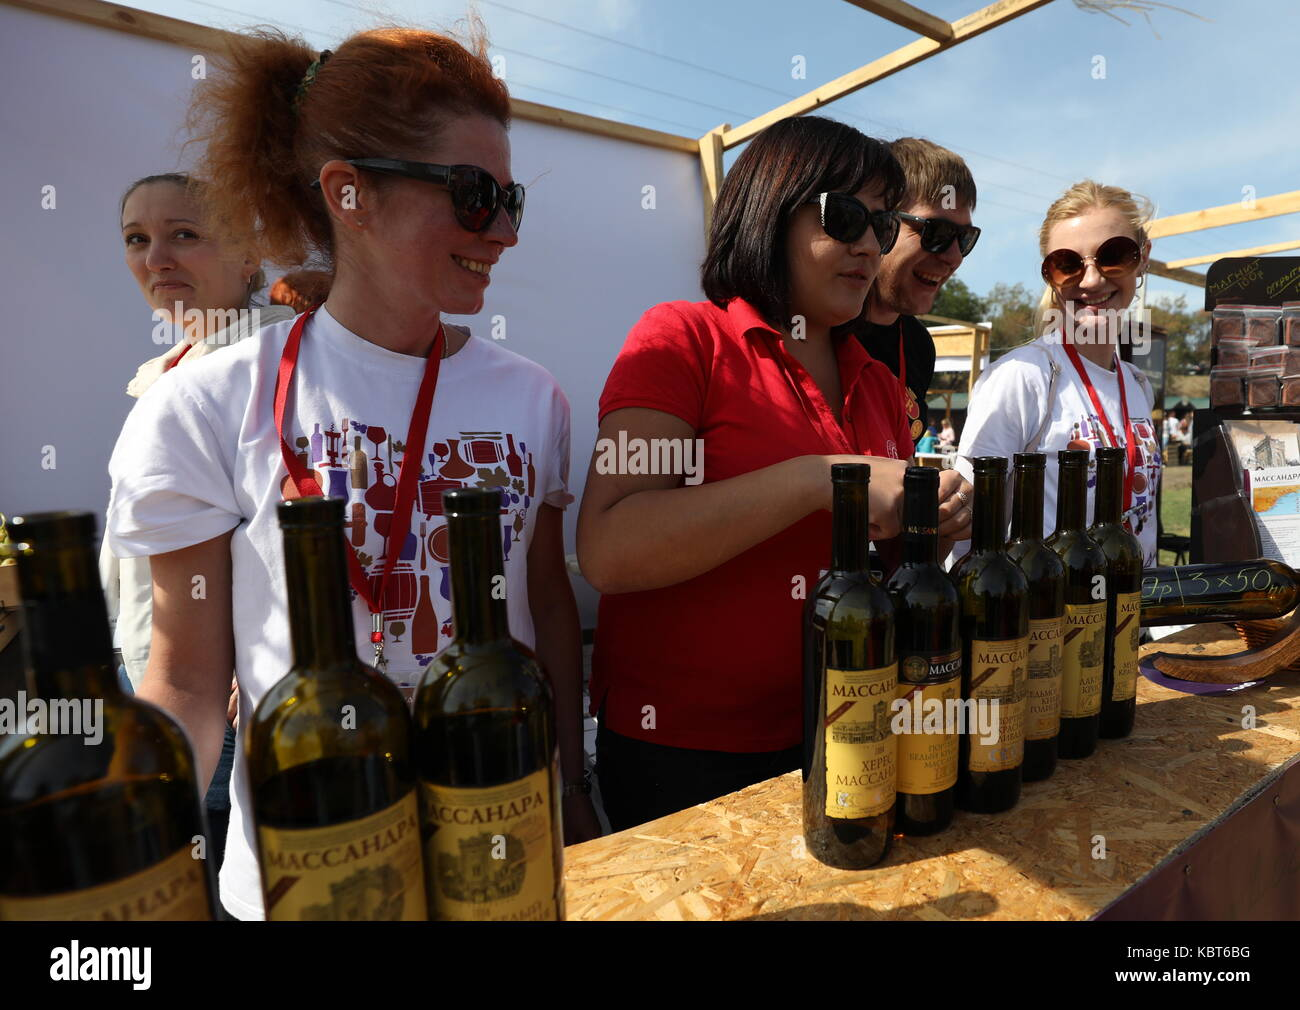 Crimea, Russia. 30th Sep, 2017. People attend the WineFest grape harvesting and wine making festival at the Zolotaya Stock Photo